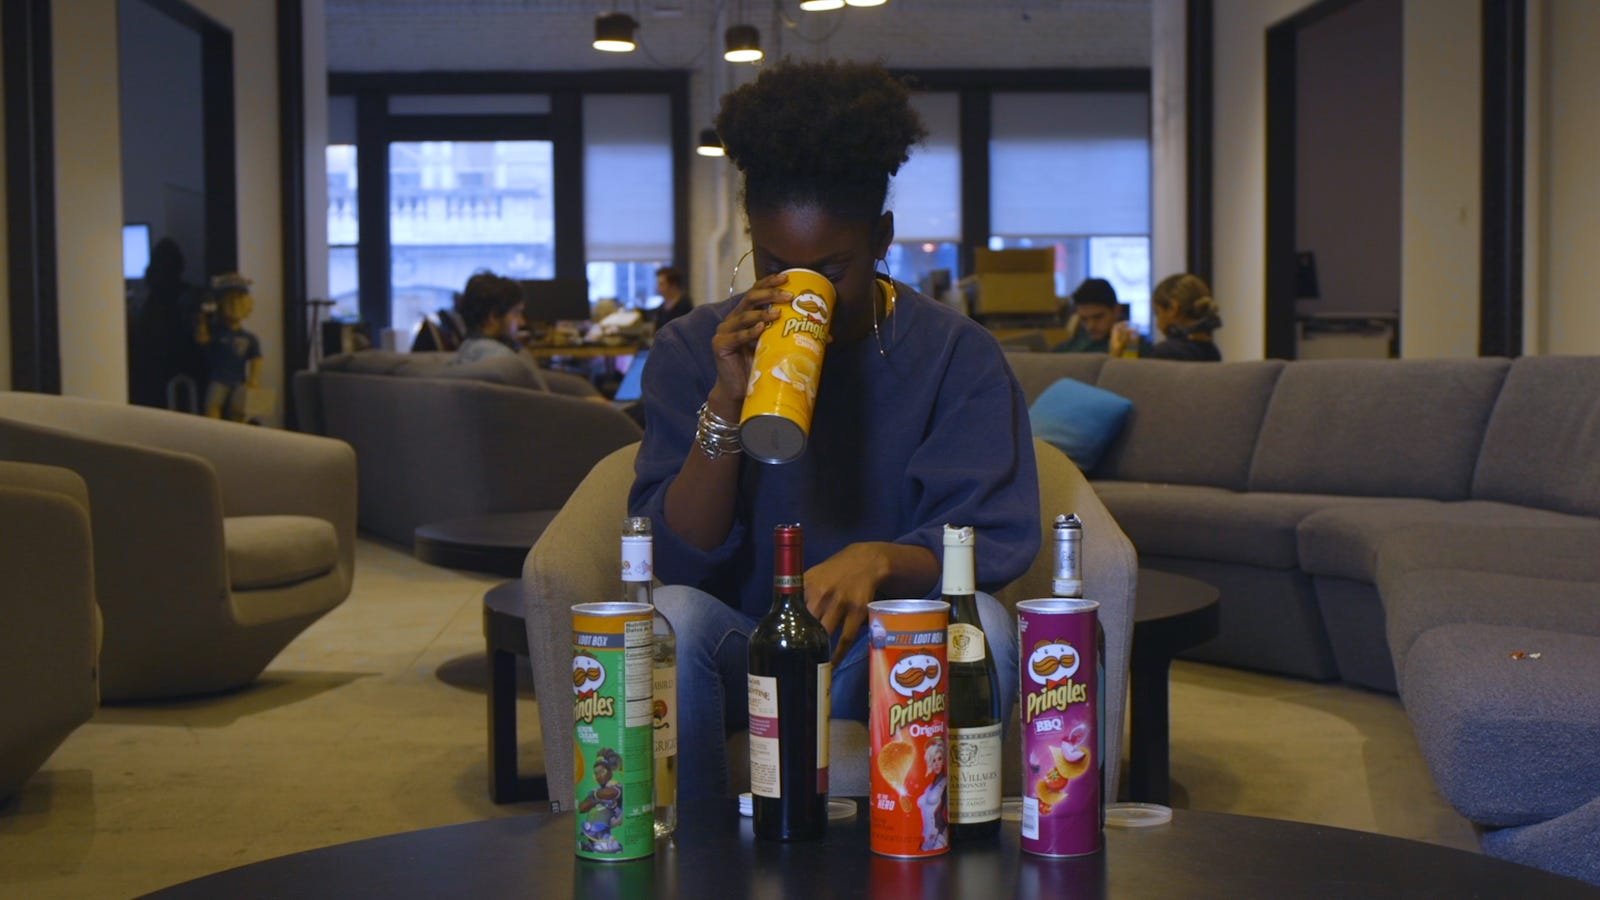 We Drank Wine From Pringles Cans In Solidarity With The Woman Banned From Walmart